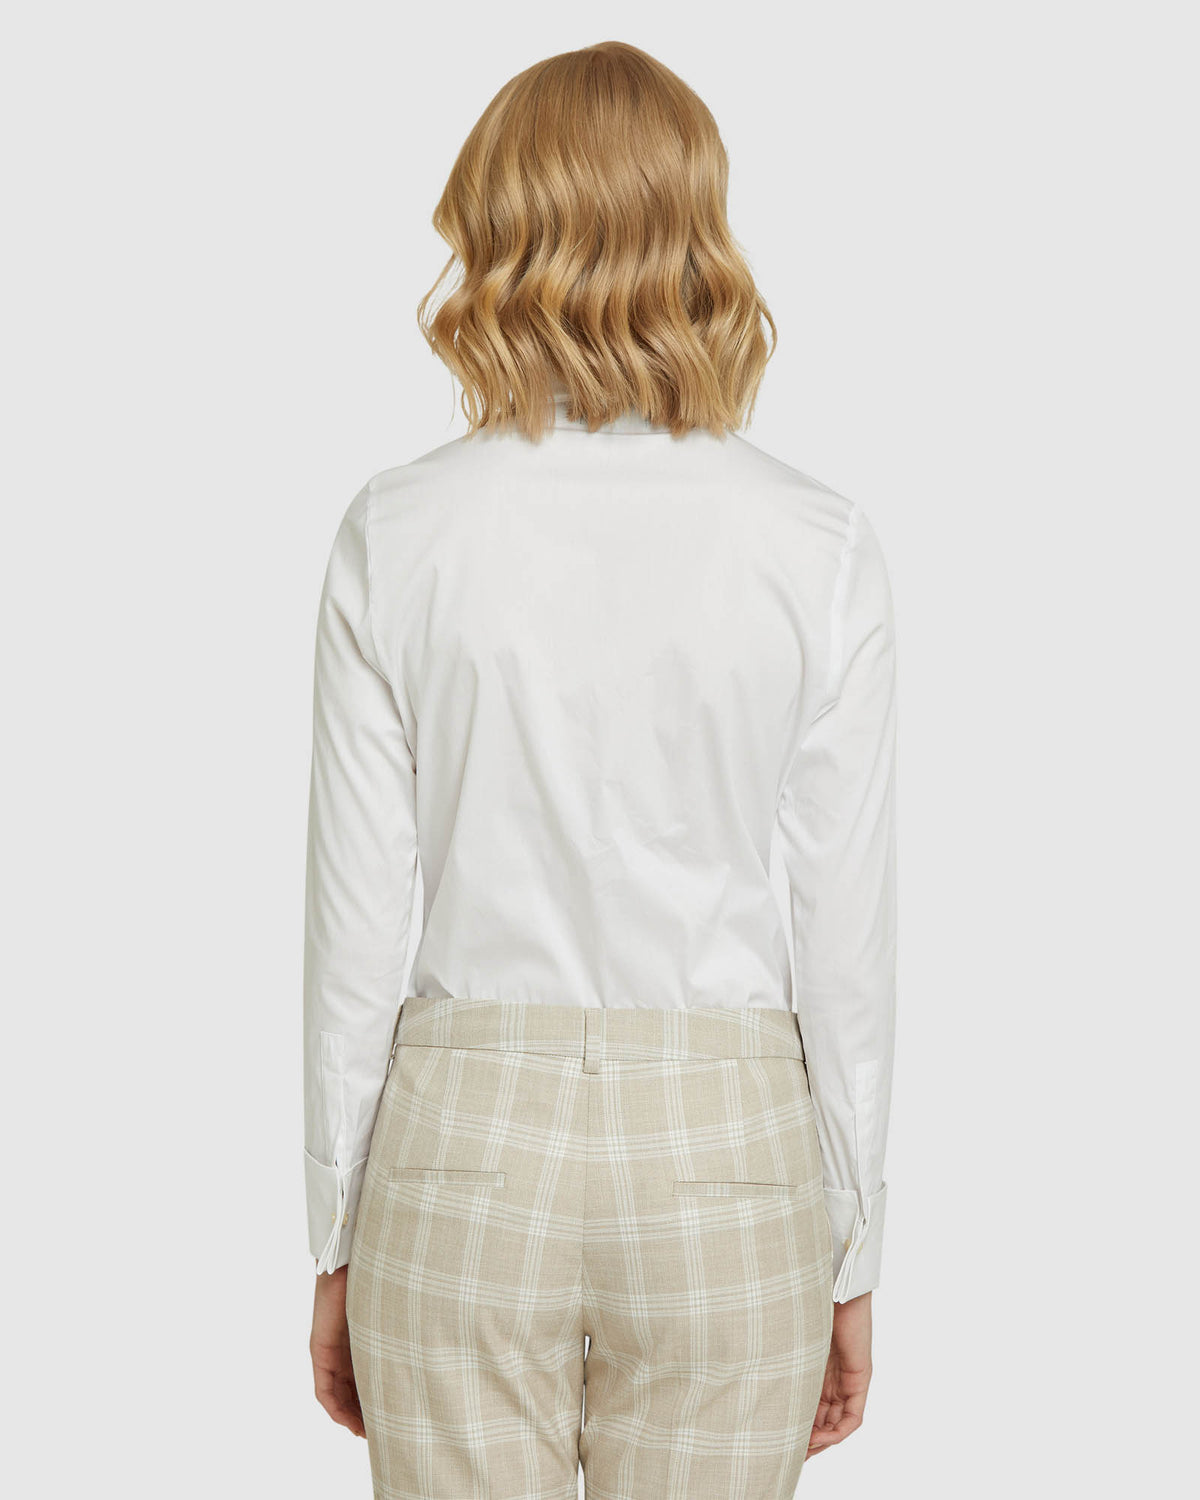 ANGEL FRENCH CUFF STRETCH SHIRT WHITE